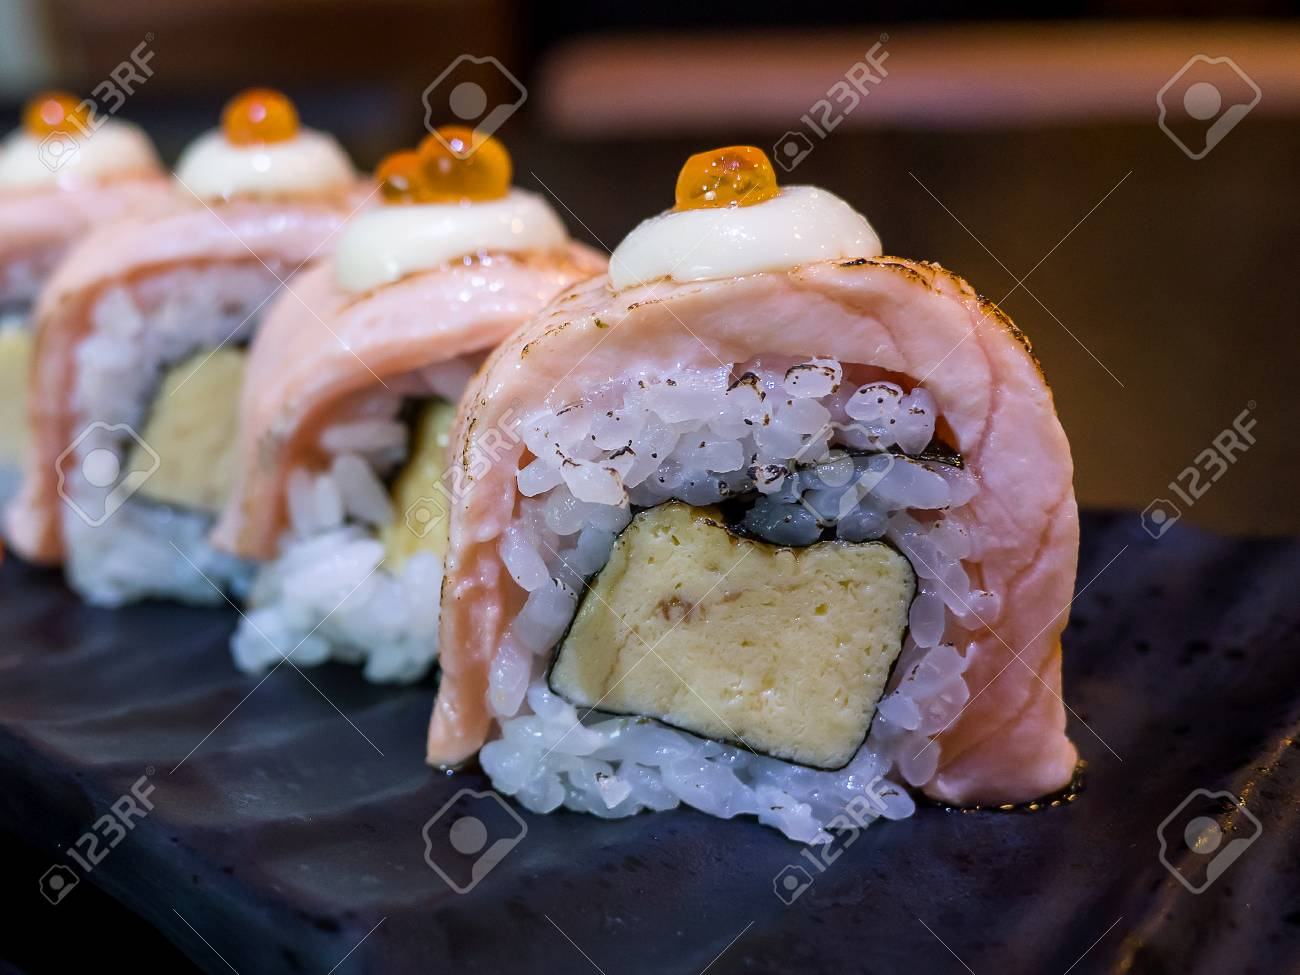 Closeup Grill Salmon Roll Sushi On Black Dish In The Restaurant Stock Photo Picture And Royalty Free Image Image 85947784